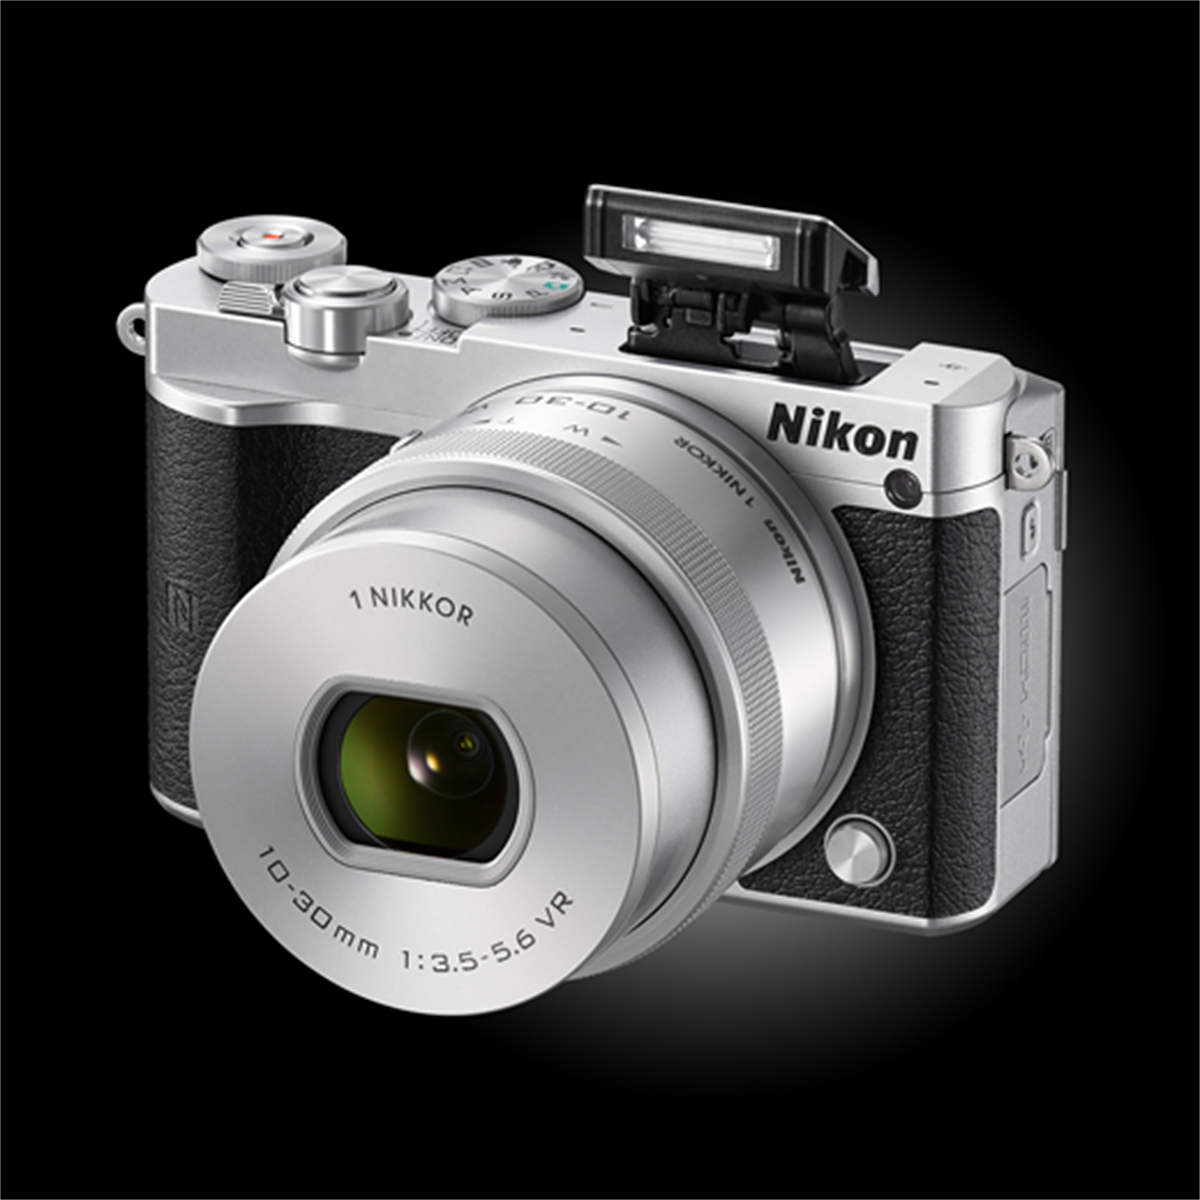 Nikon 1 J5 What You Need To Know Digital Photography Review Drybox Camera Mirrorless Canon Eos M10